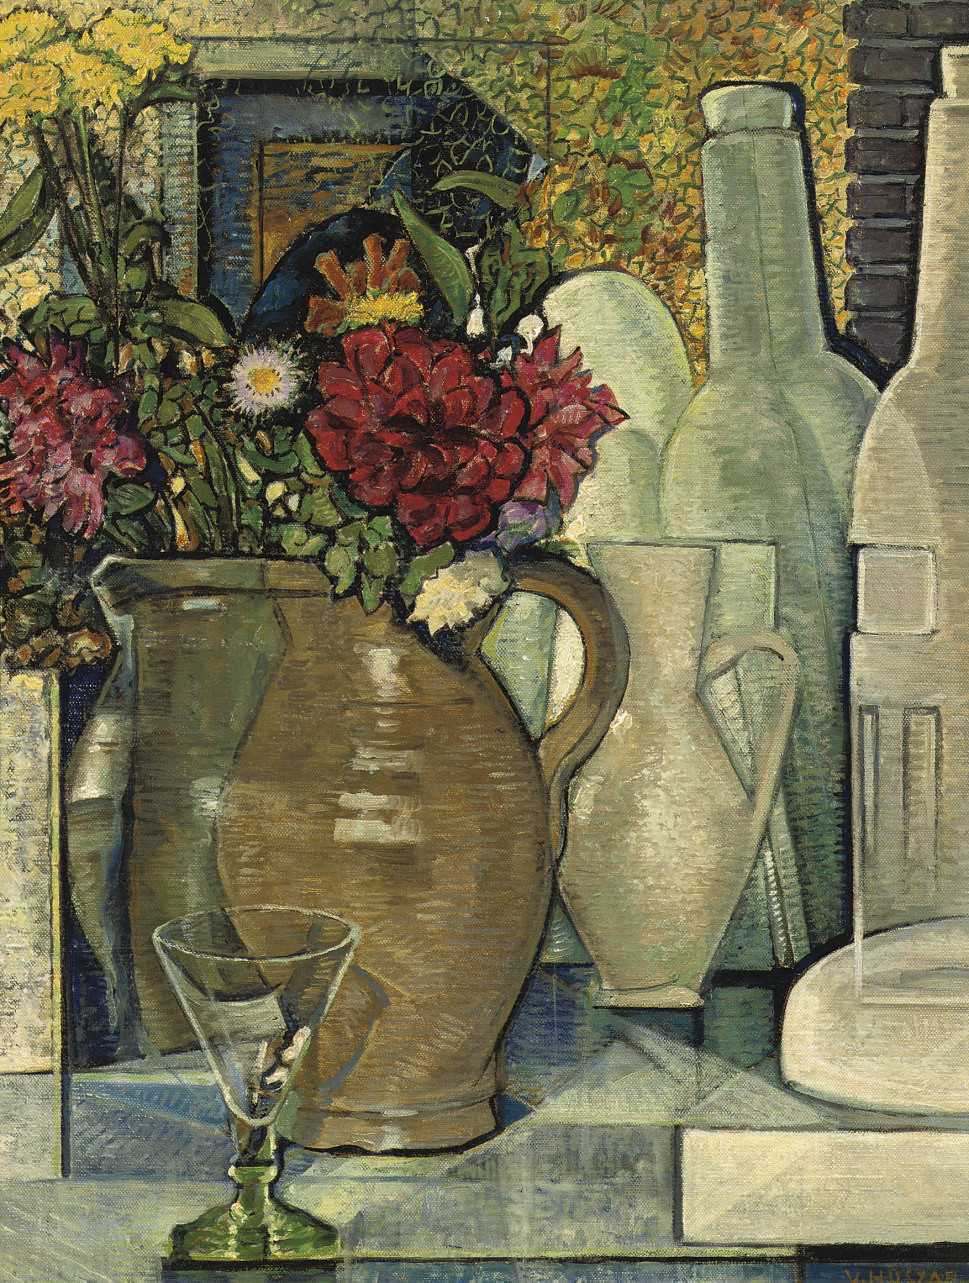 Vaas met bloemen - A still life with flowers in a vase